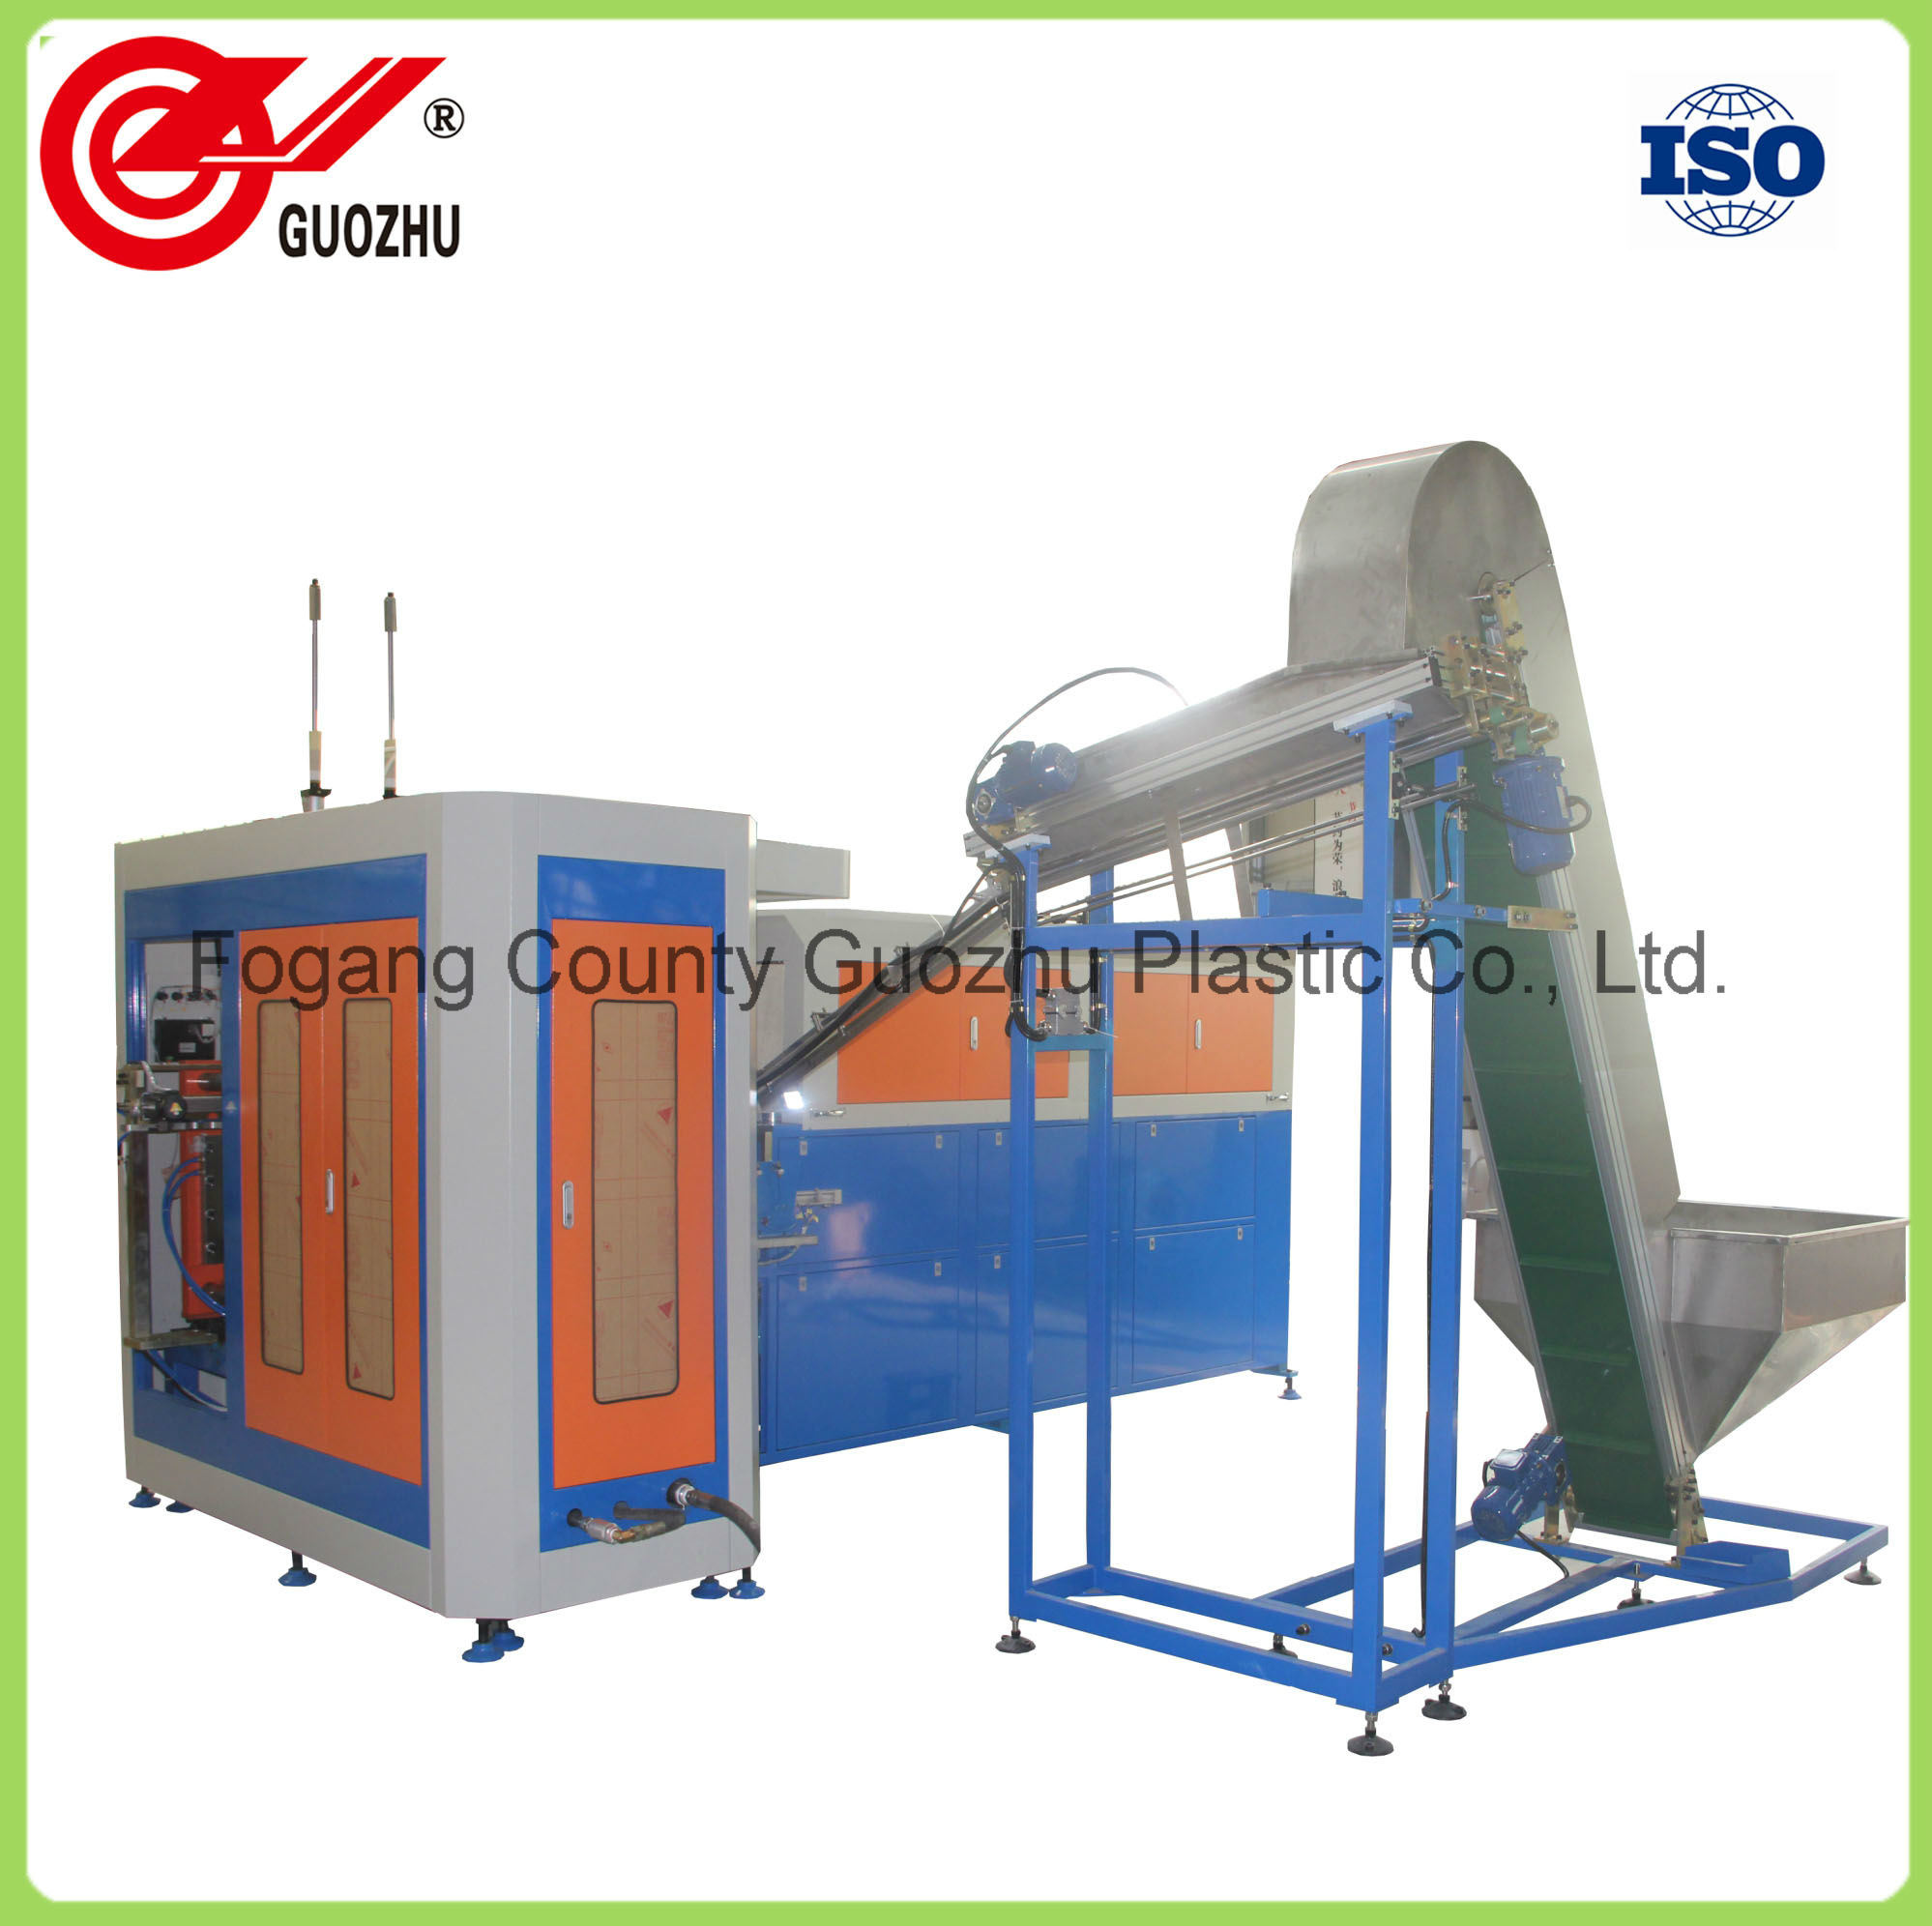 Plastic 5 to 10L Pet Bottle Blowing Machine with Ce (PMLB-03D)